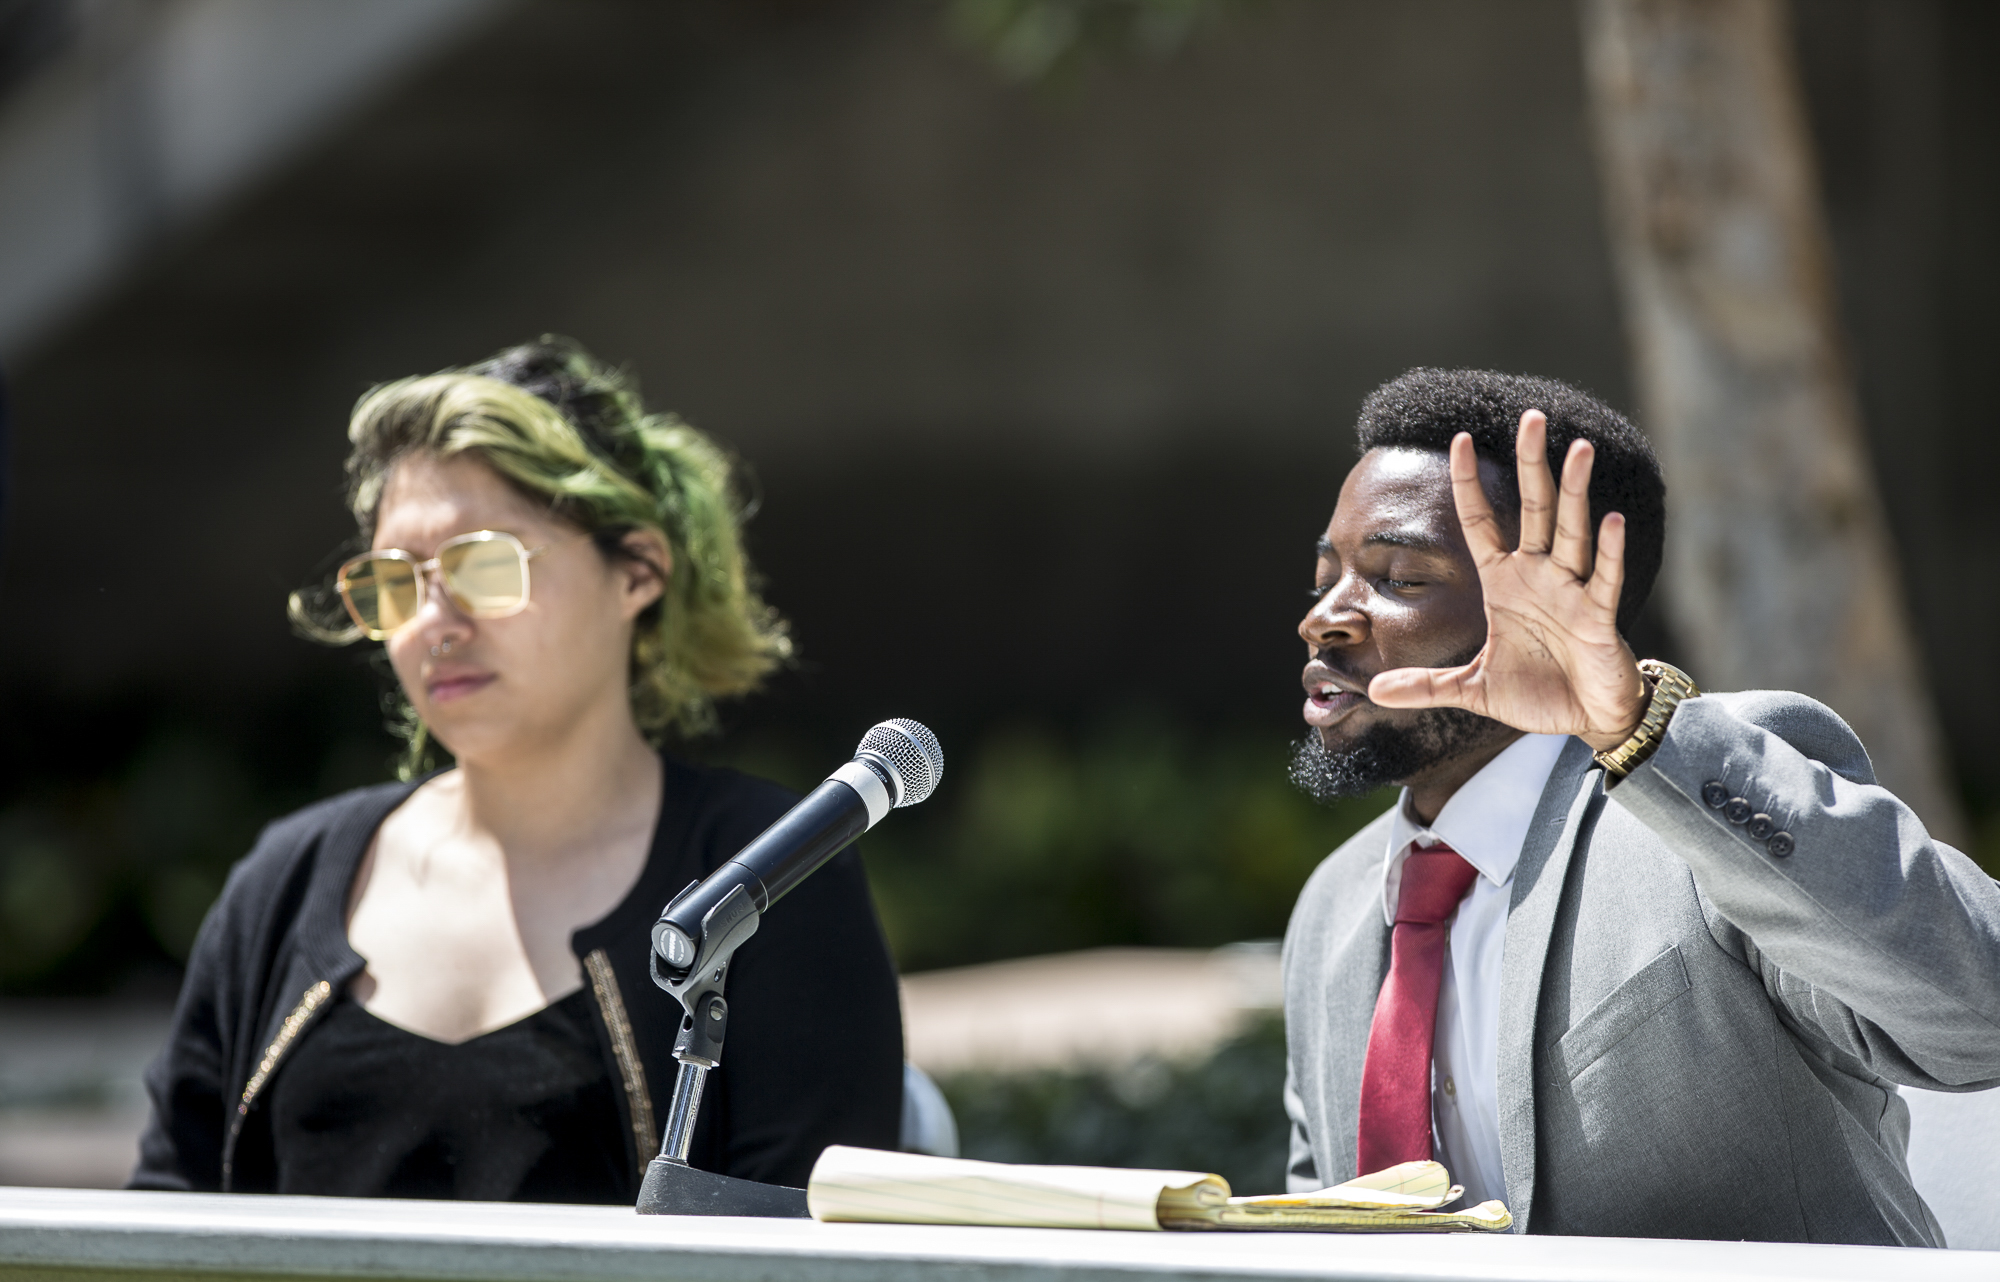 Santa Monica College Associate Student (A.S) Director of Student Advocacy candidates Alexa Benavente (left) and Gosple Ofoegbu (right) take questions from those in attendance during the A.S election debate on the quad of the Santa Monica College main campus in Santa Monica California, on Tuesday, April 3, 2018. (Matthew Martin/Corsair Photo)